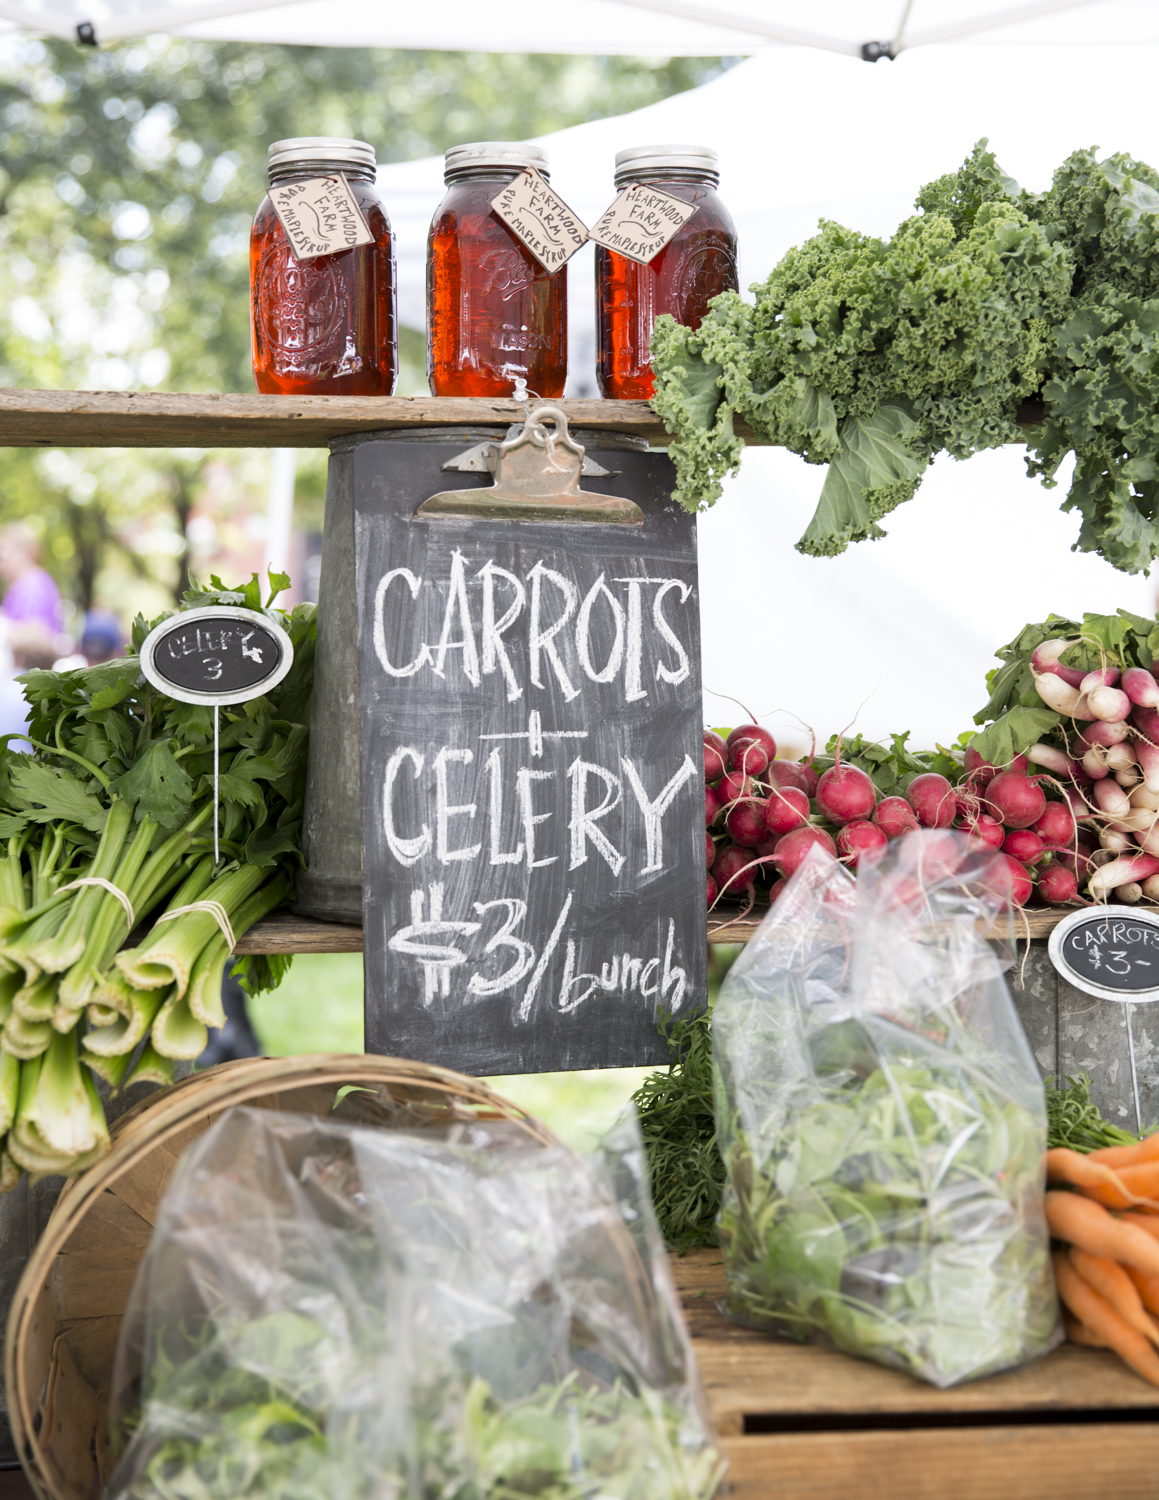 Heartwood Farm booth at Burlington Farmers' Market. Pic. by Dylan Griffin